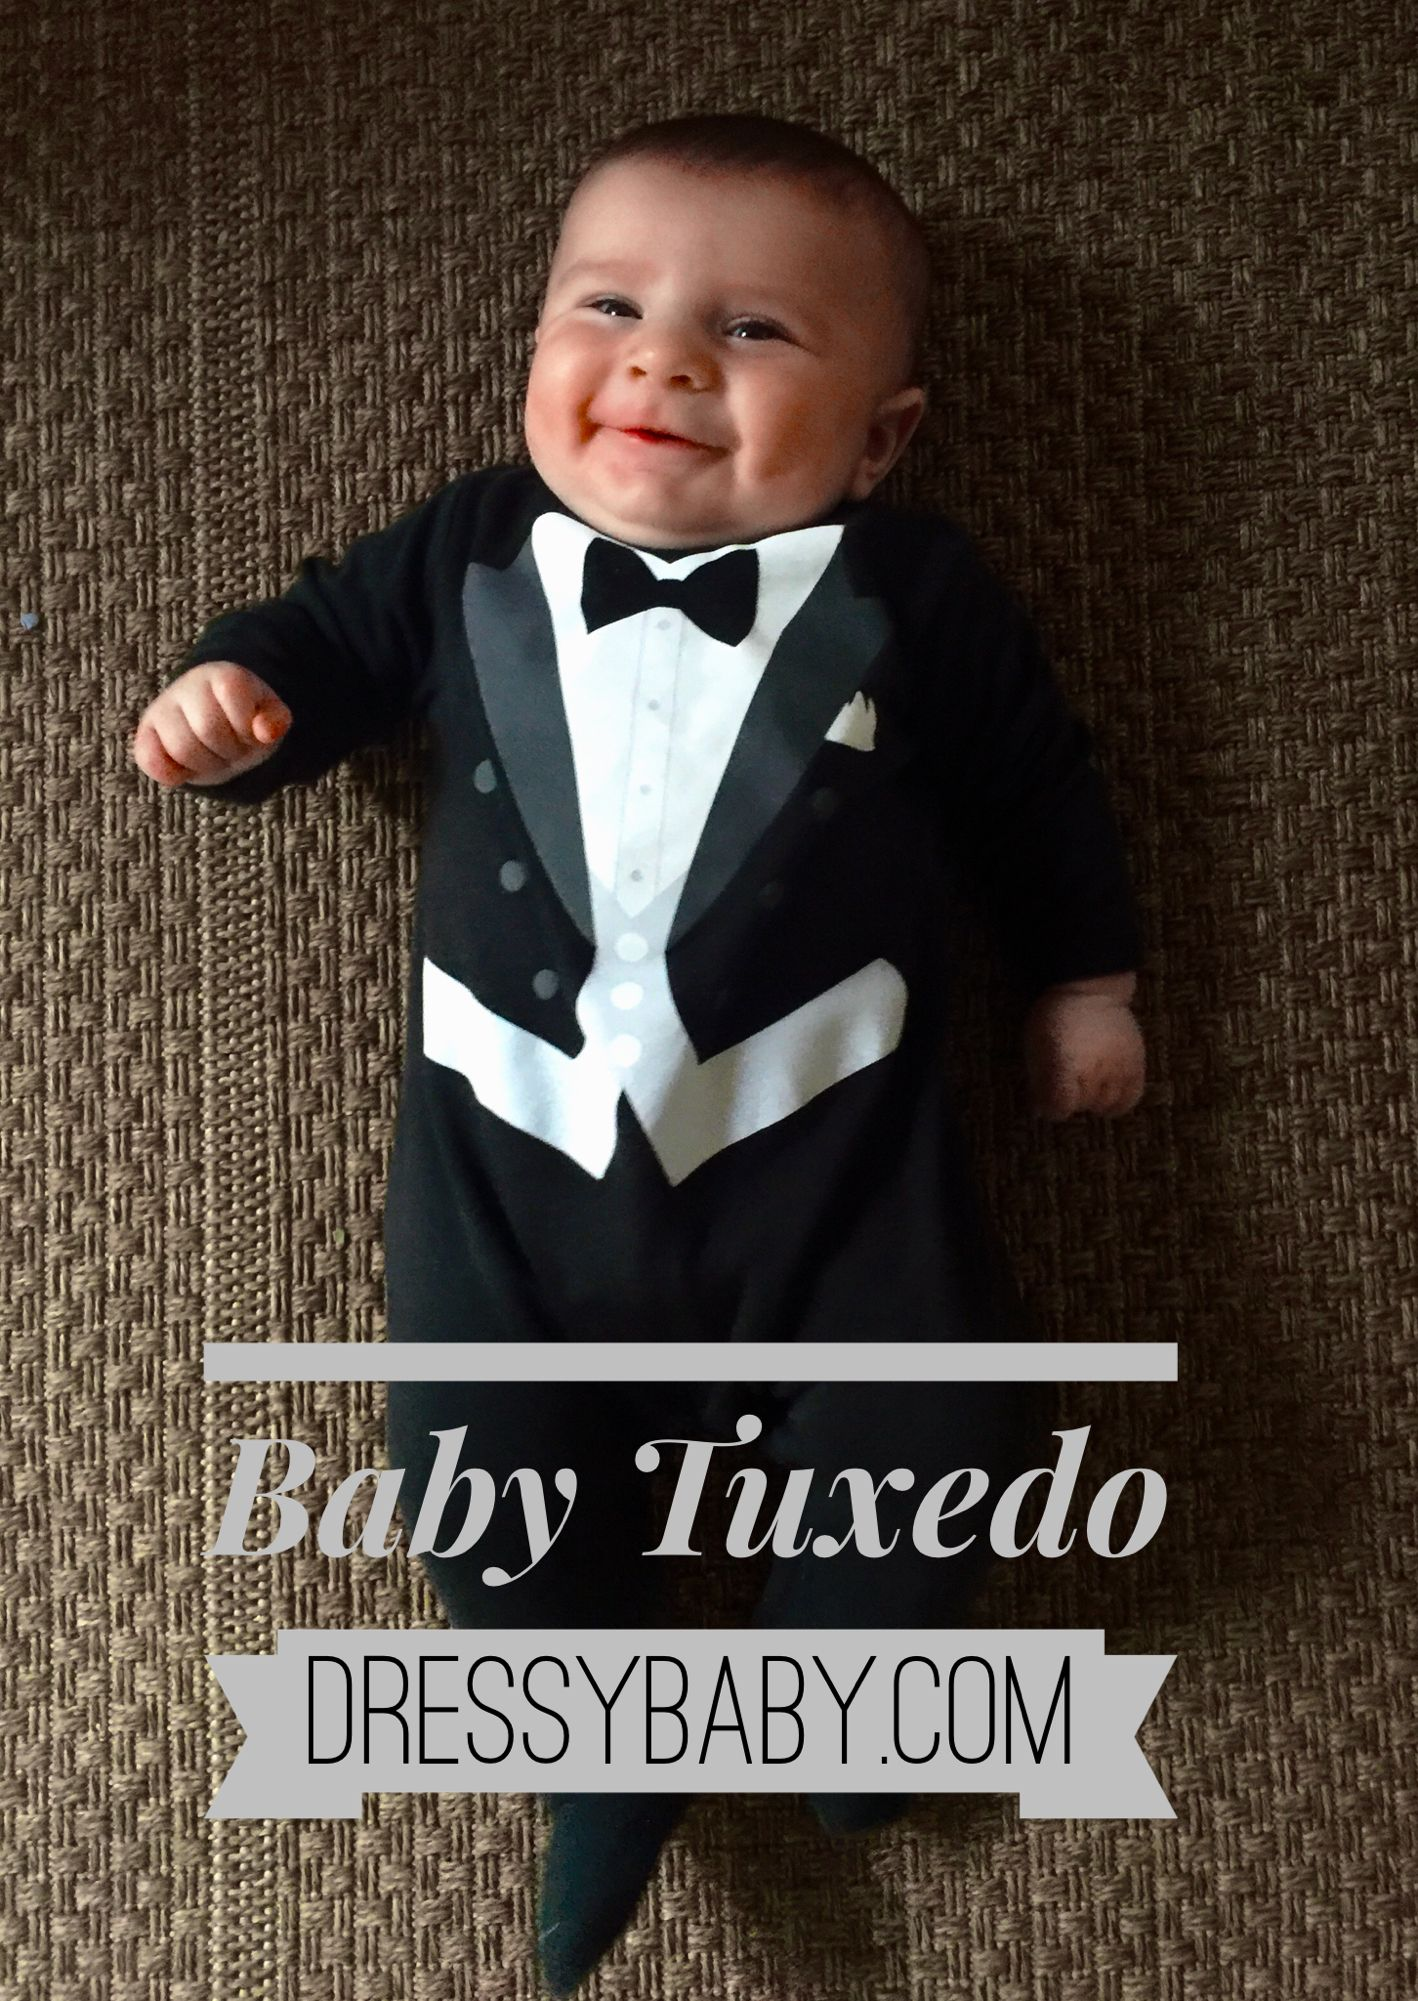 6546b70bcf23 Baby boy tuxedo pajama dress up outfit by DressyBaby.com perfect for ...